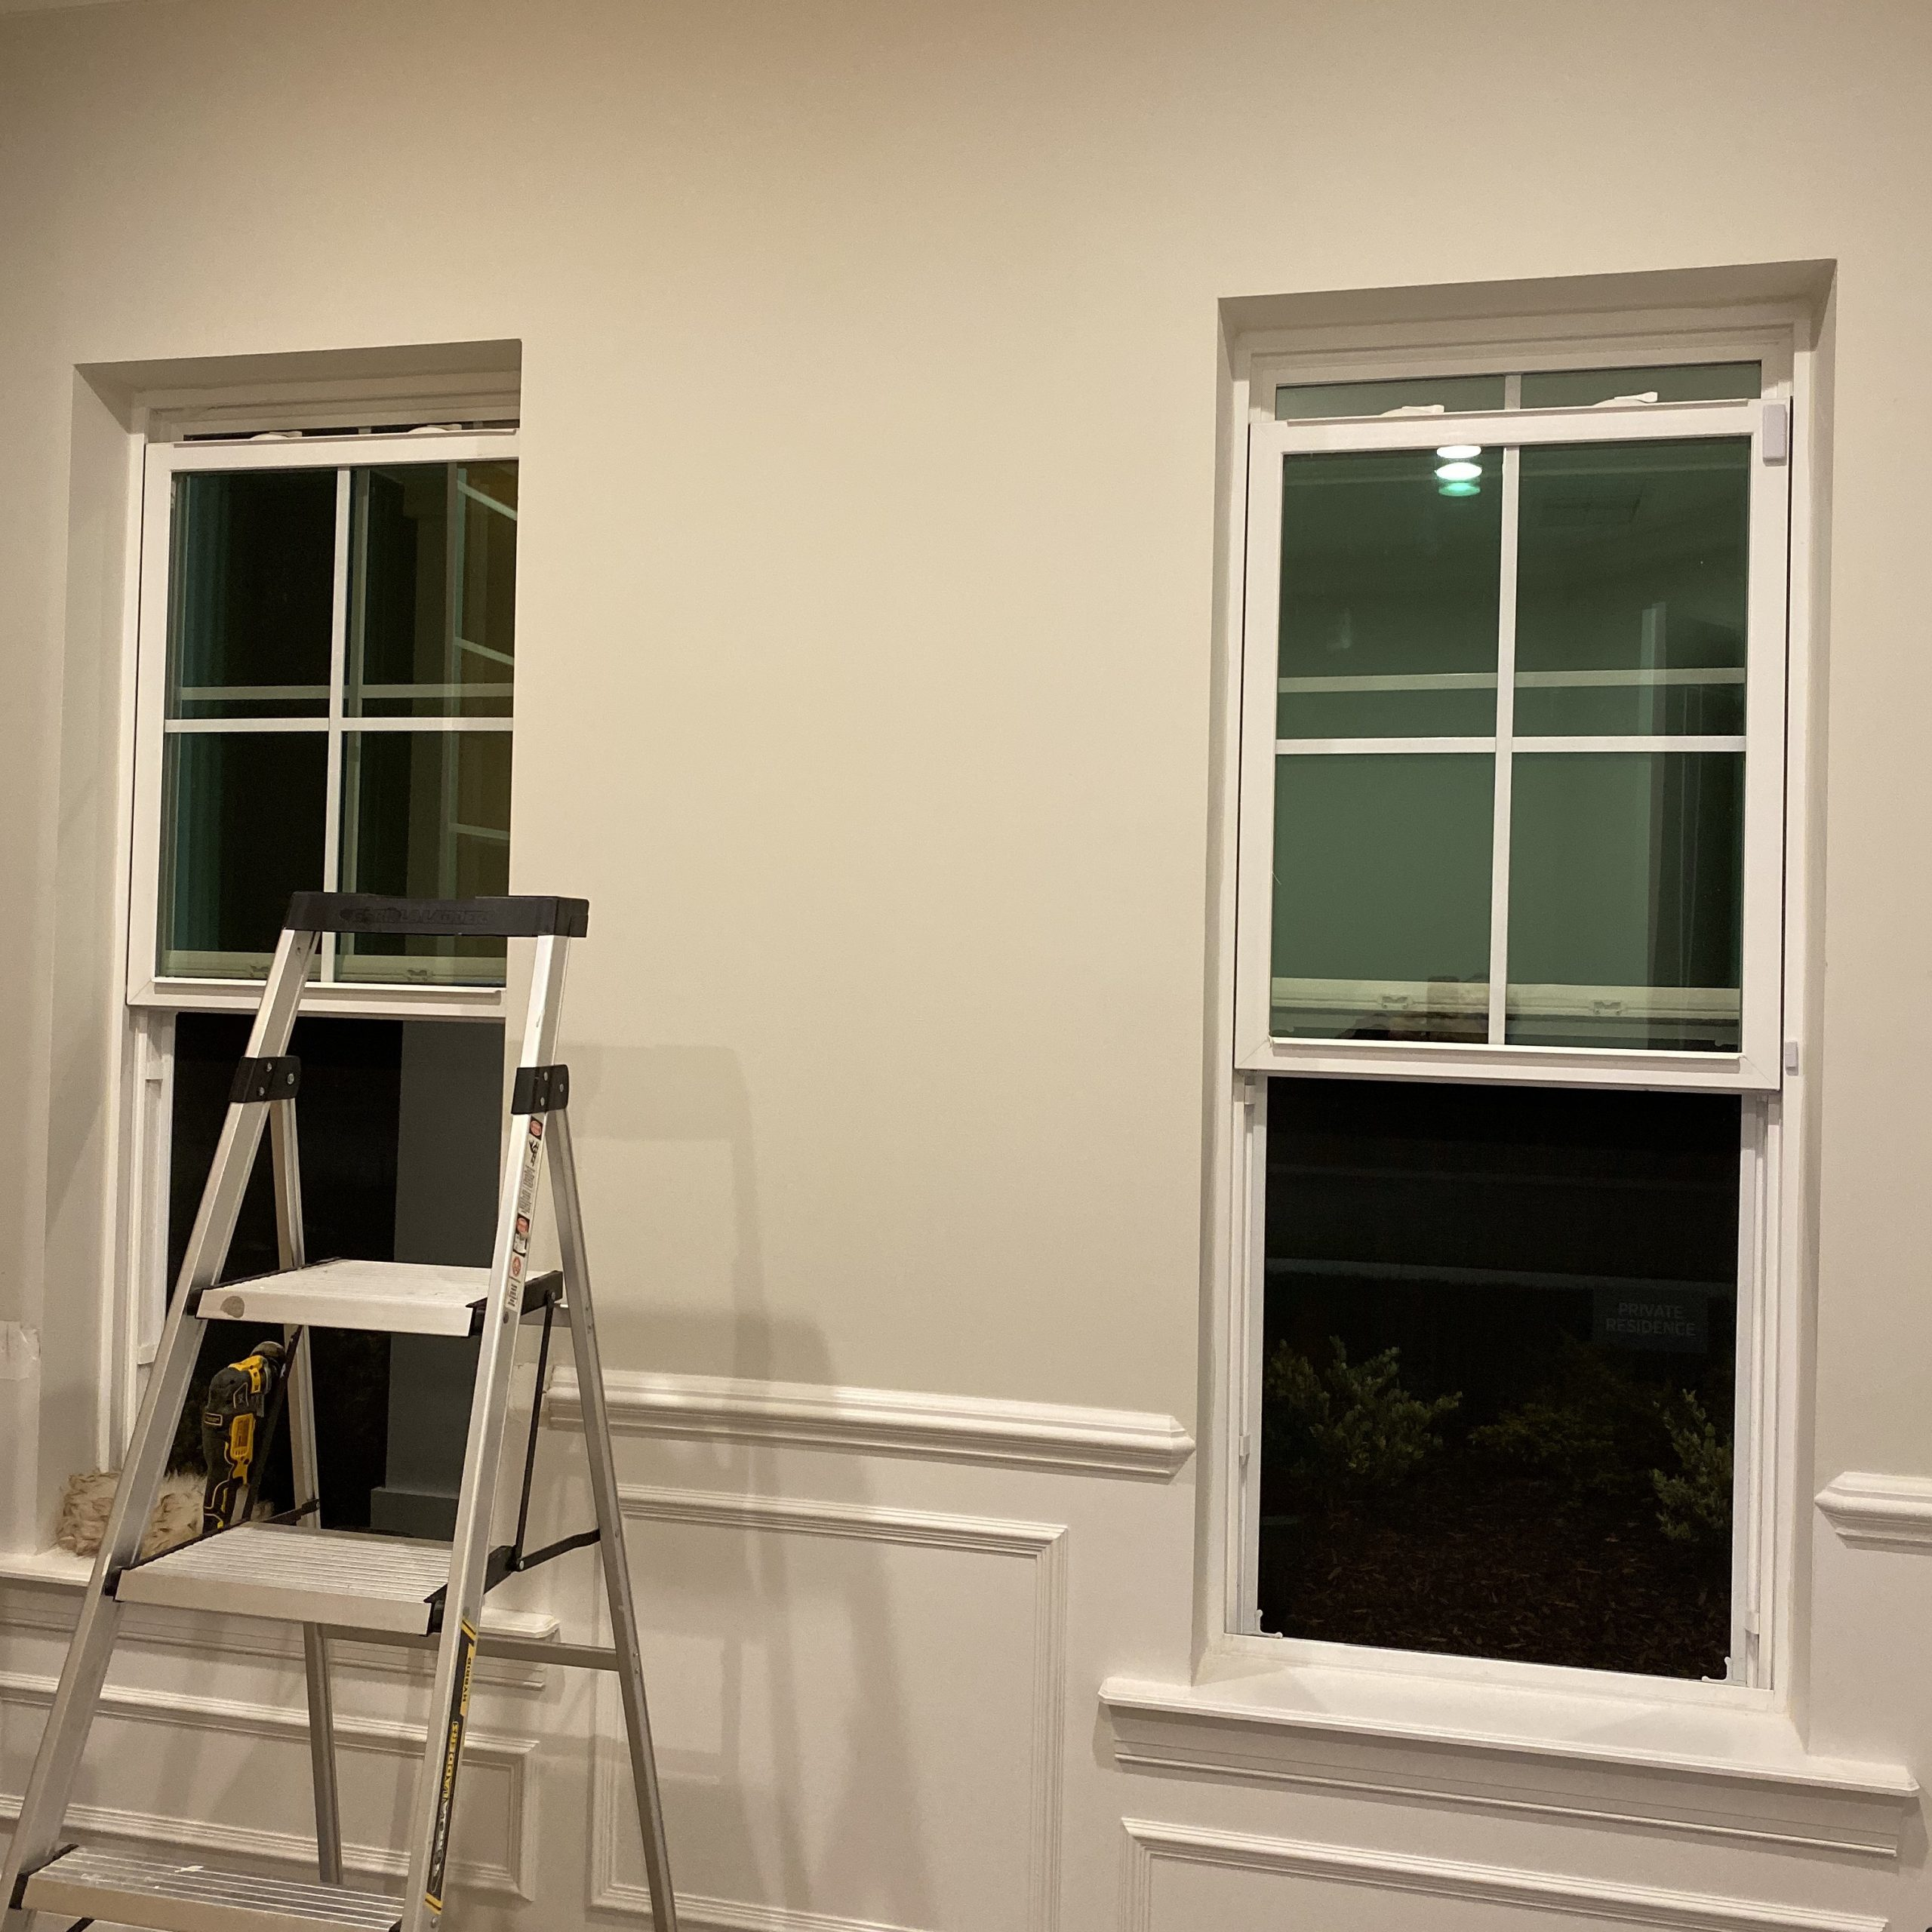 Office Built Ins DIY Before